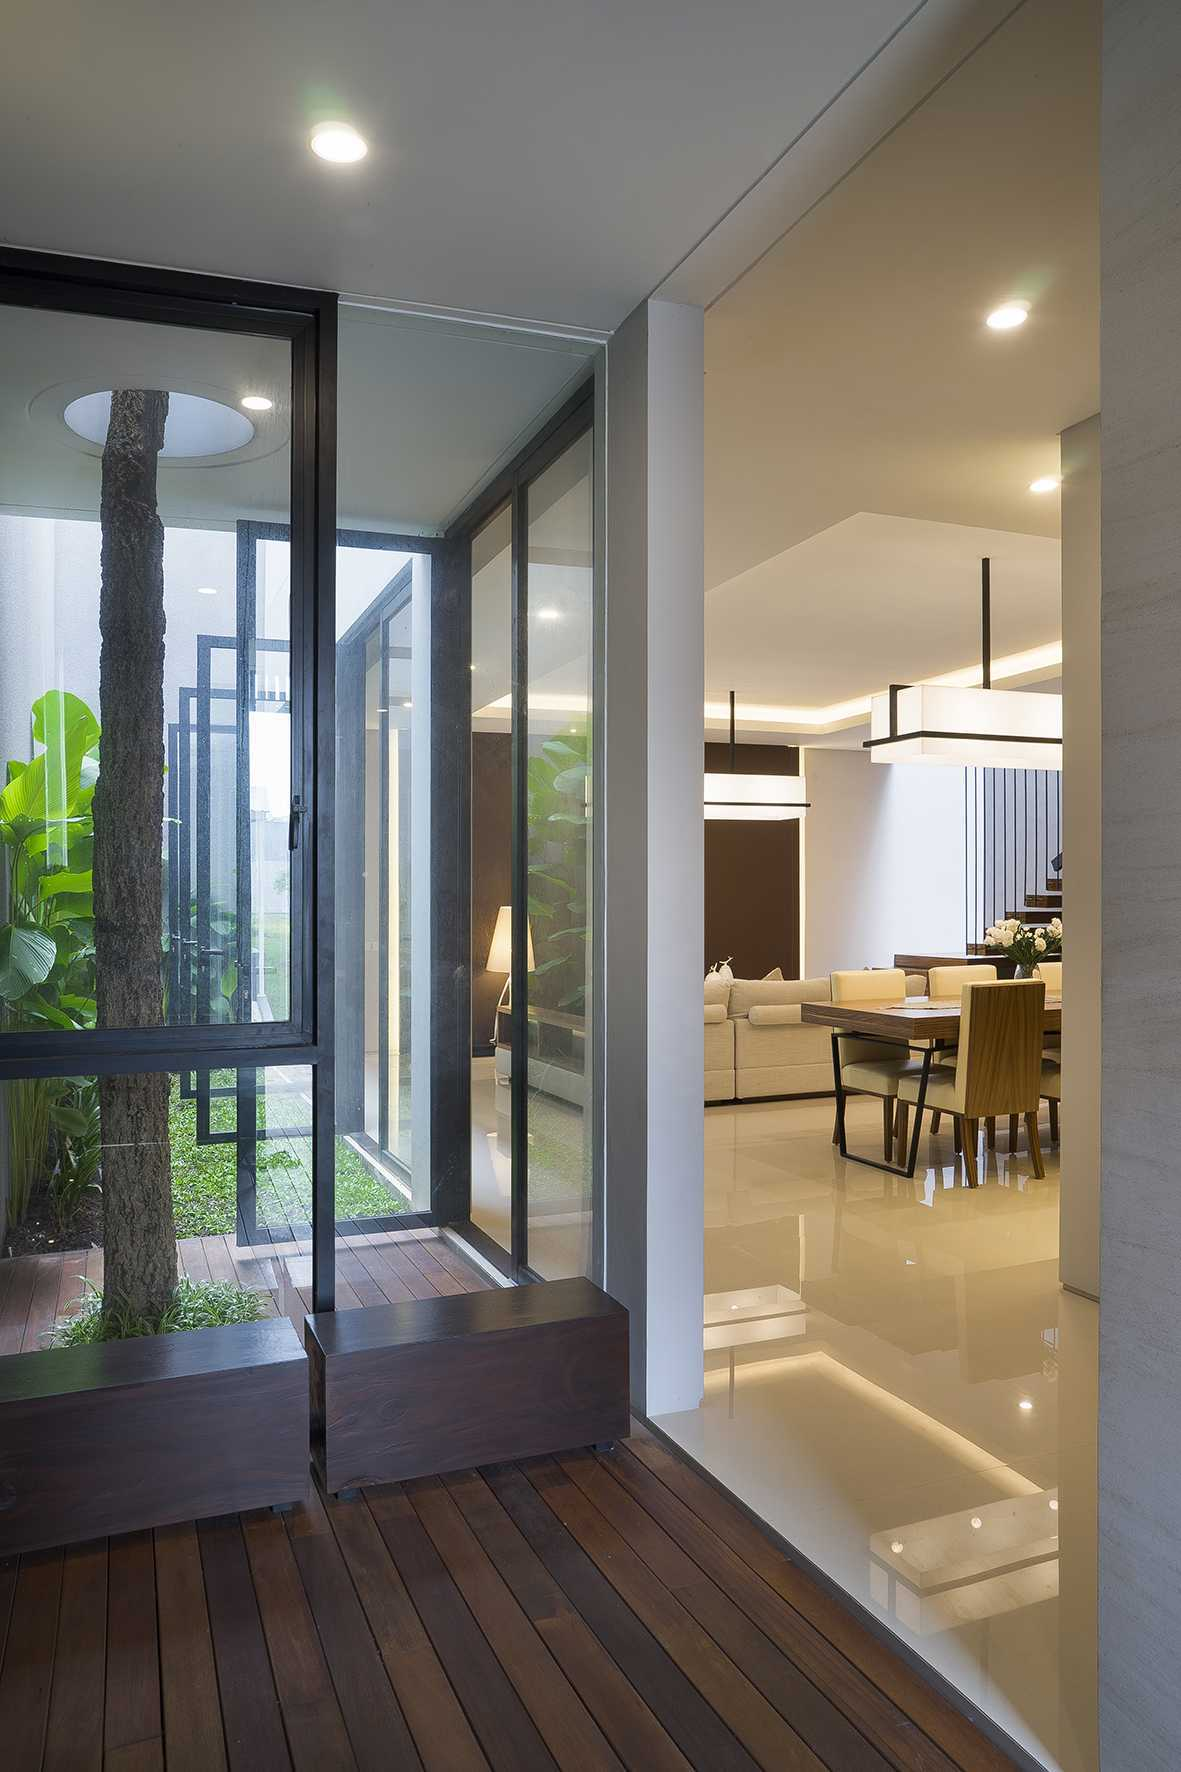 """Simple Projects Architecture """"s"""" House Pakuwon Indah, Surabaya - Indonesia Pakuwon Indah, Surabaya - Indonesia Corridor   32992"""